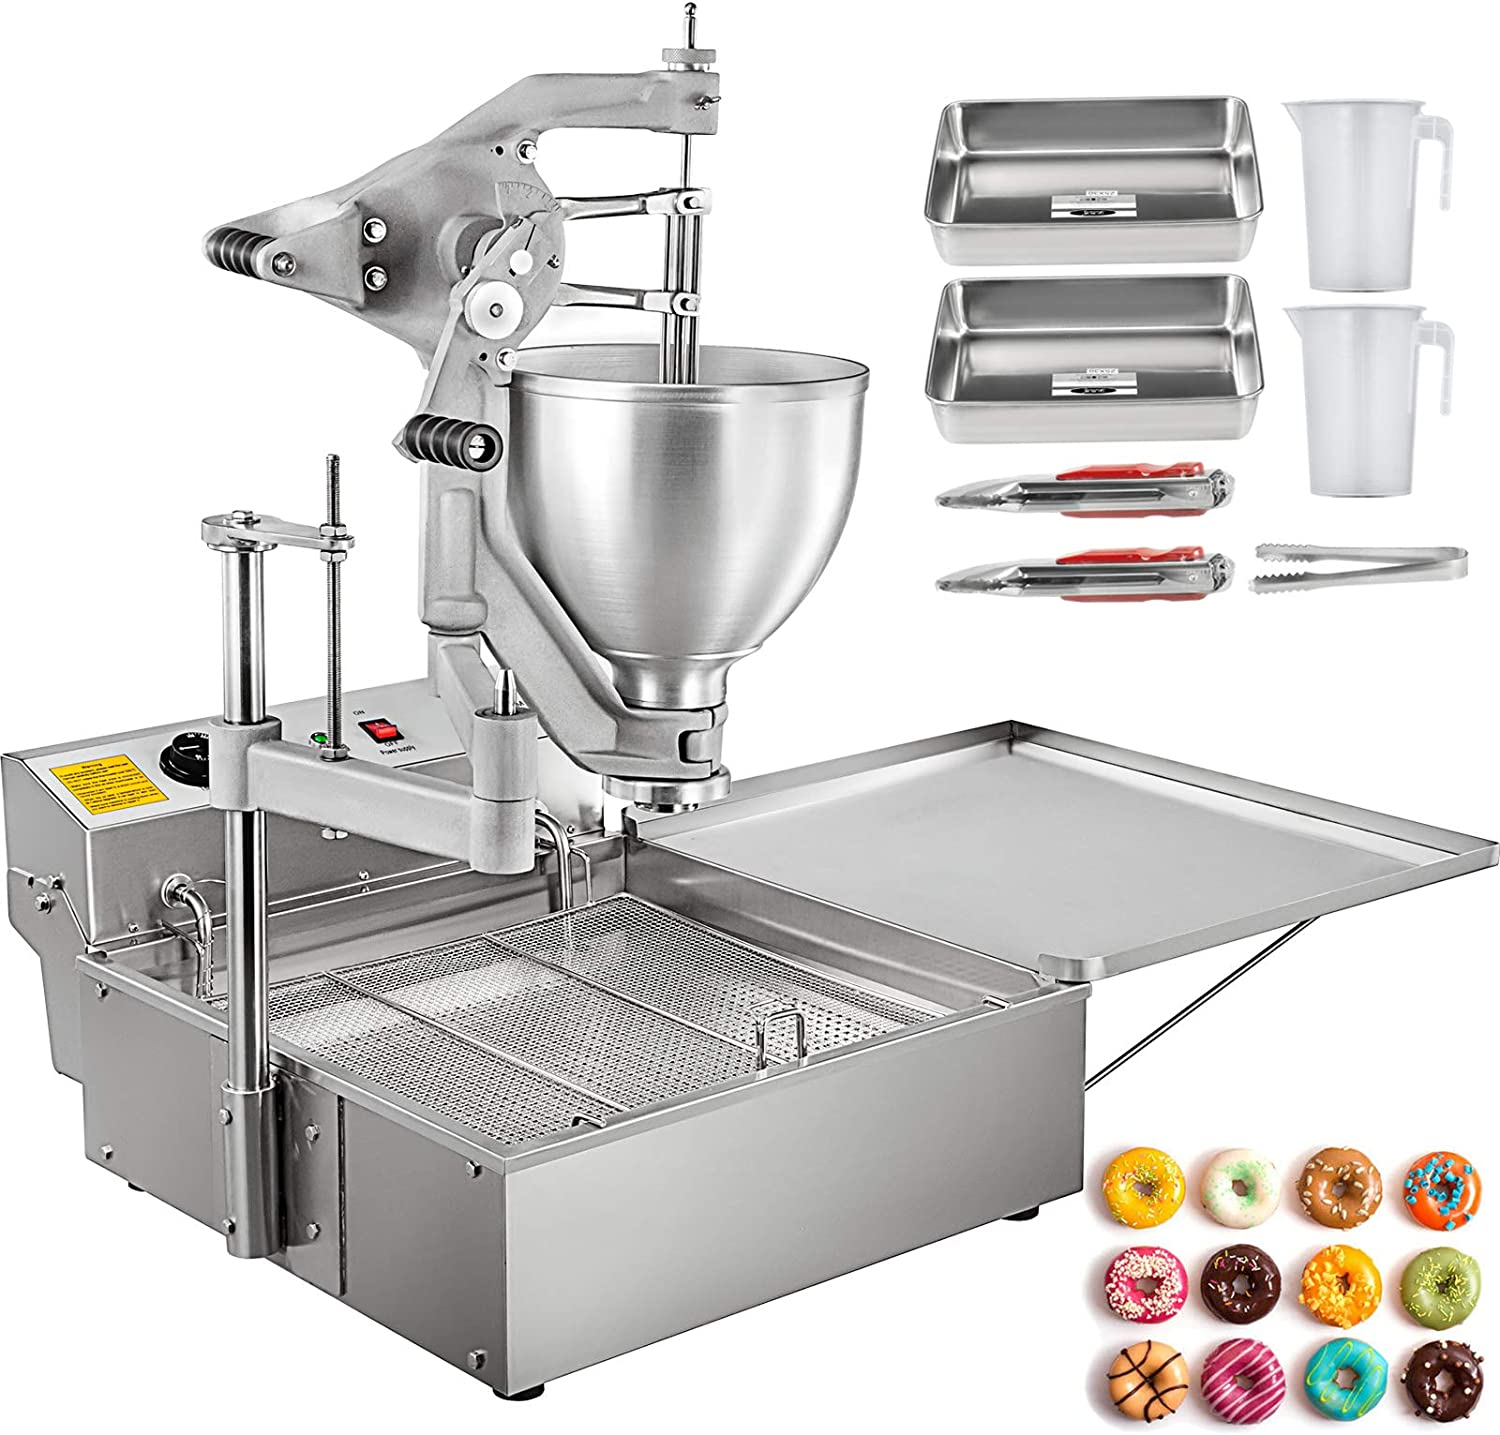 VBENLEM Donut Fryer Manual Commercial Mini Donut Maker 9L Capacity Hopper Donut Fryer Commercial 3 Donut Molds Donut Machine Maker Adjustable Thickness Commercial Donut Maker, 3000W, Stainless Steel